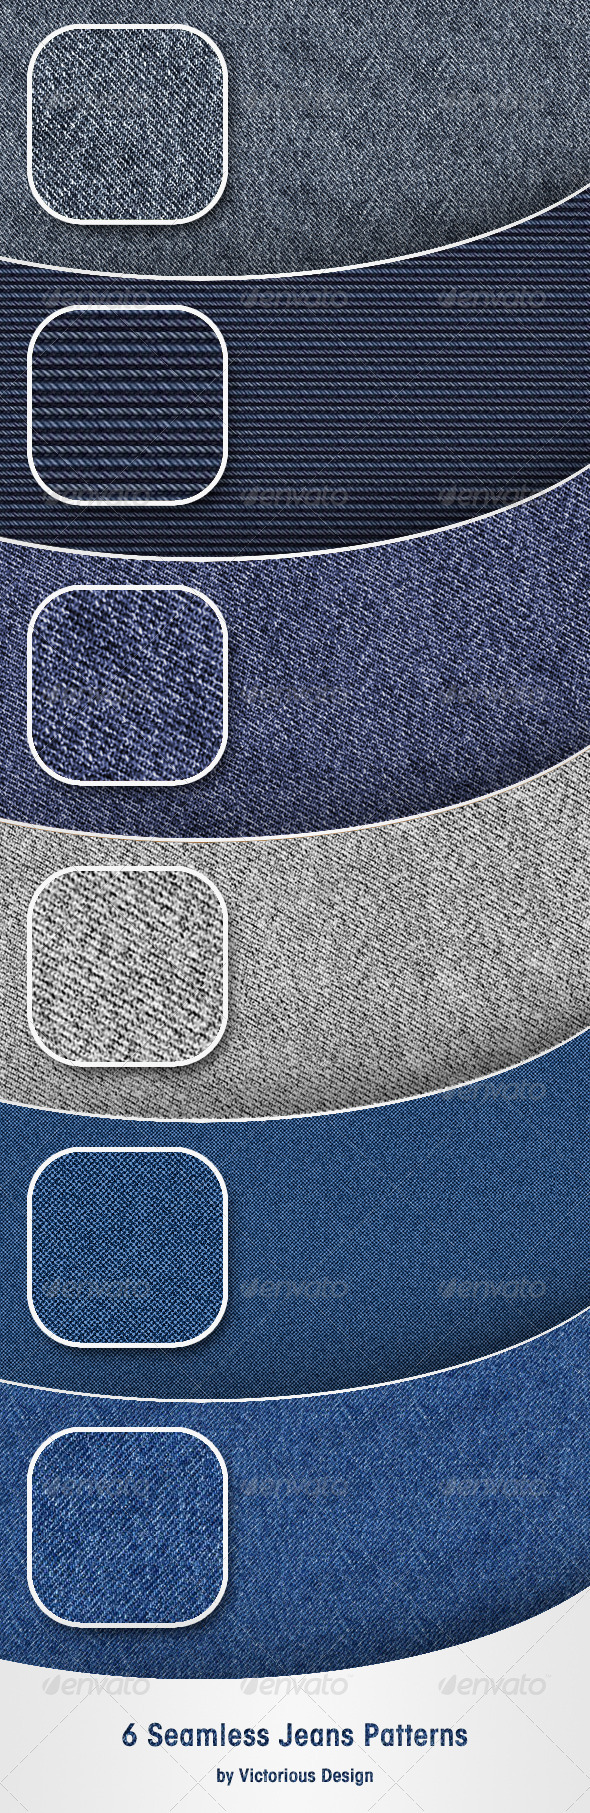 6 Seamless Jeans Patterns - Textures / Fills / Patterns Photoshop